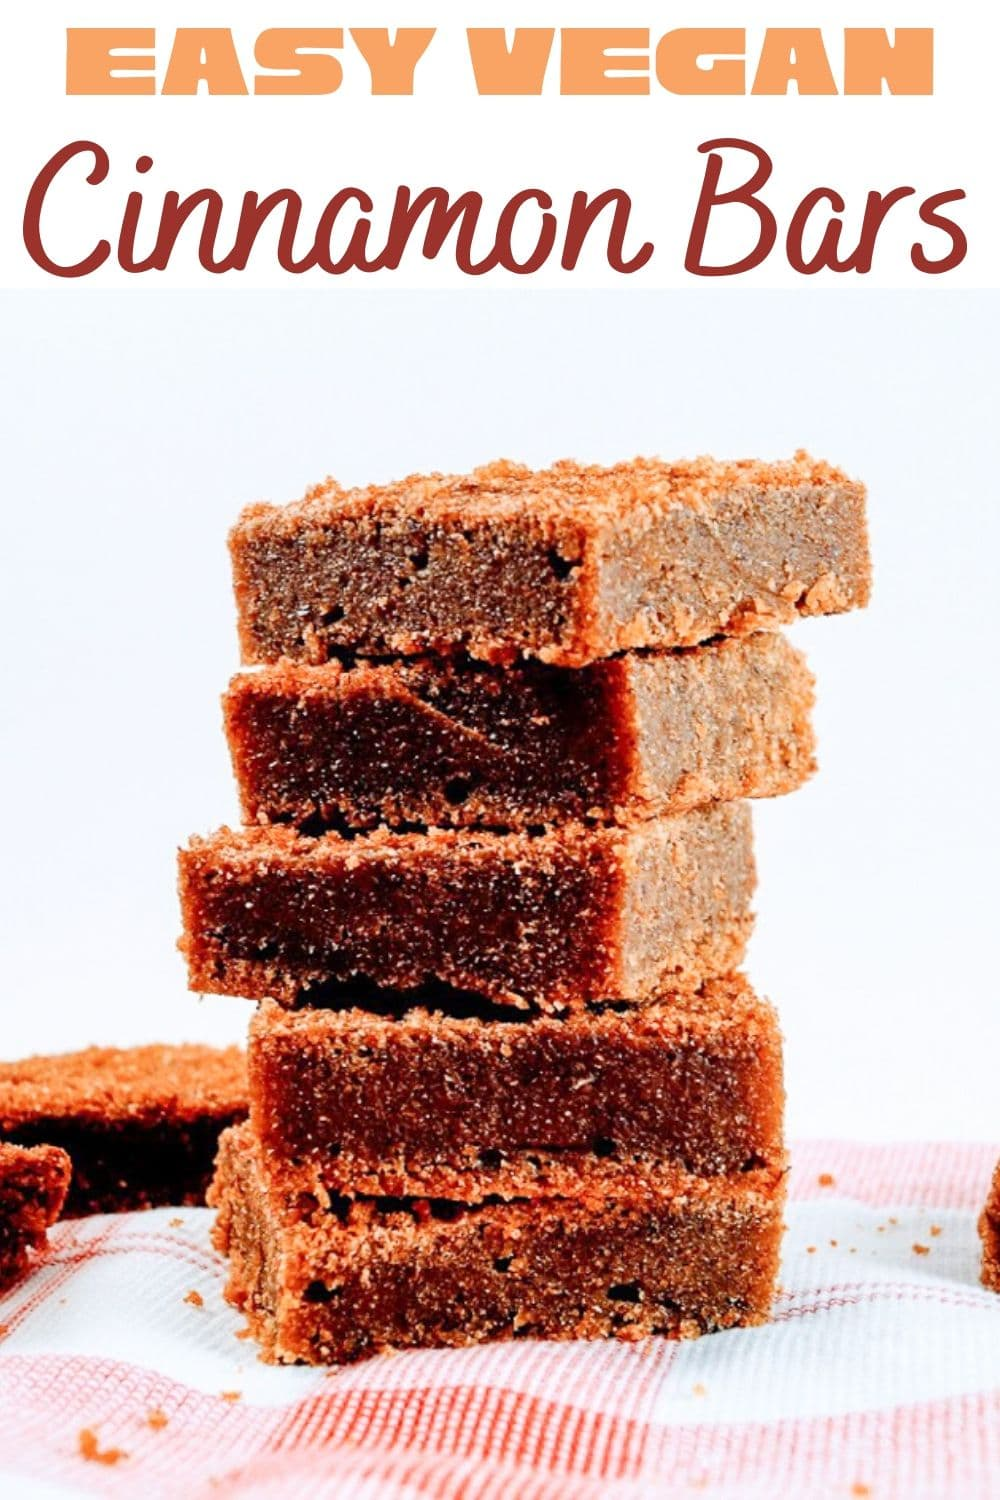 Easy Vegan Cinnamon Bars for Pinterest